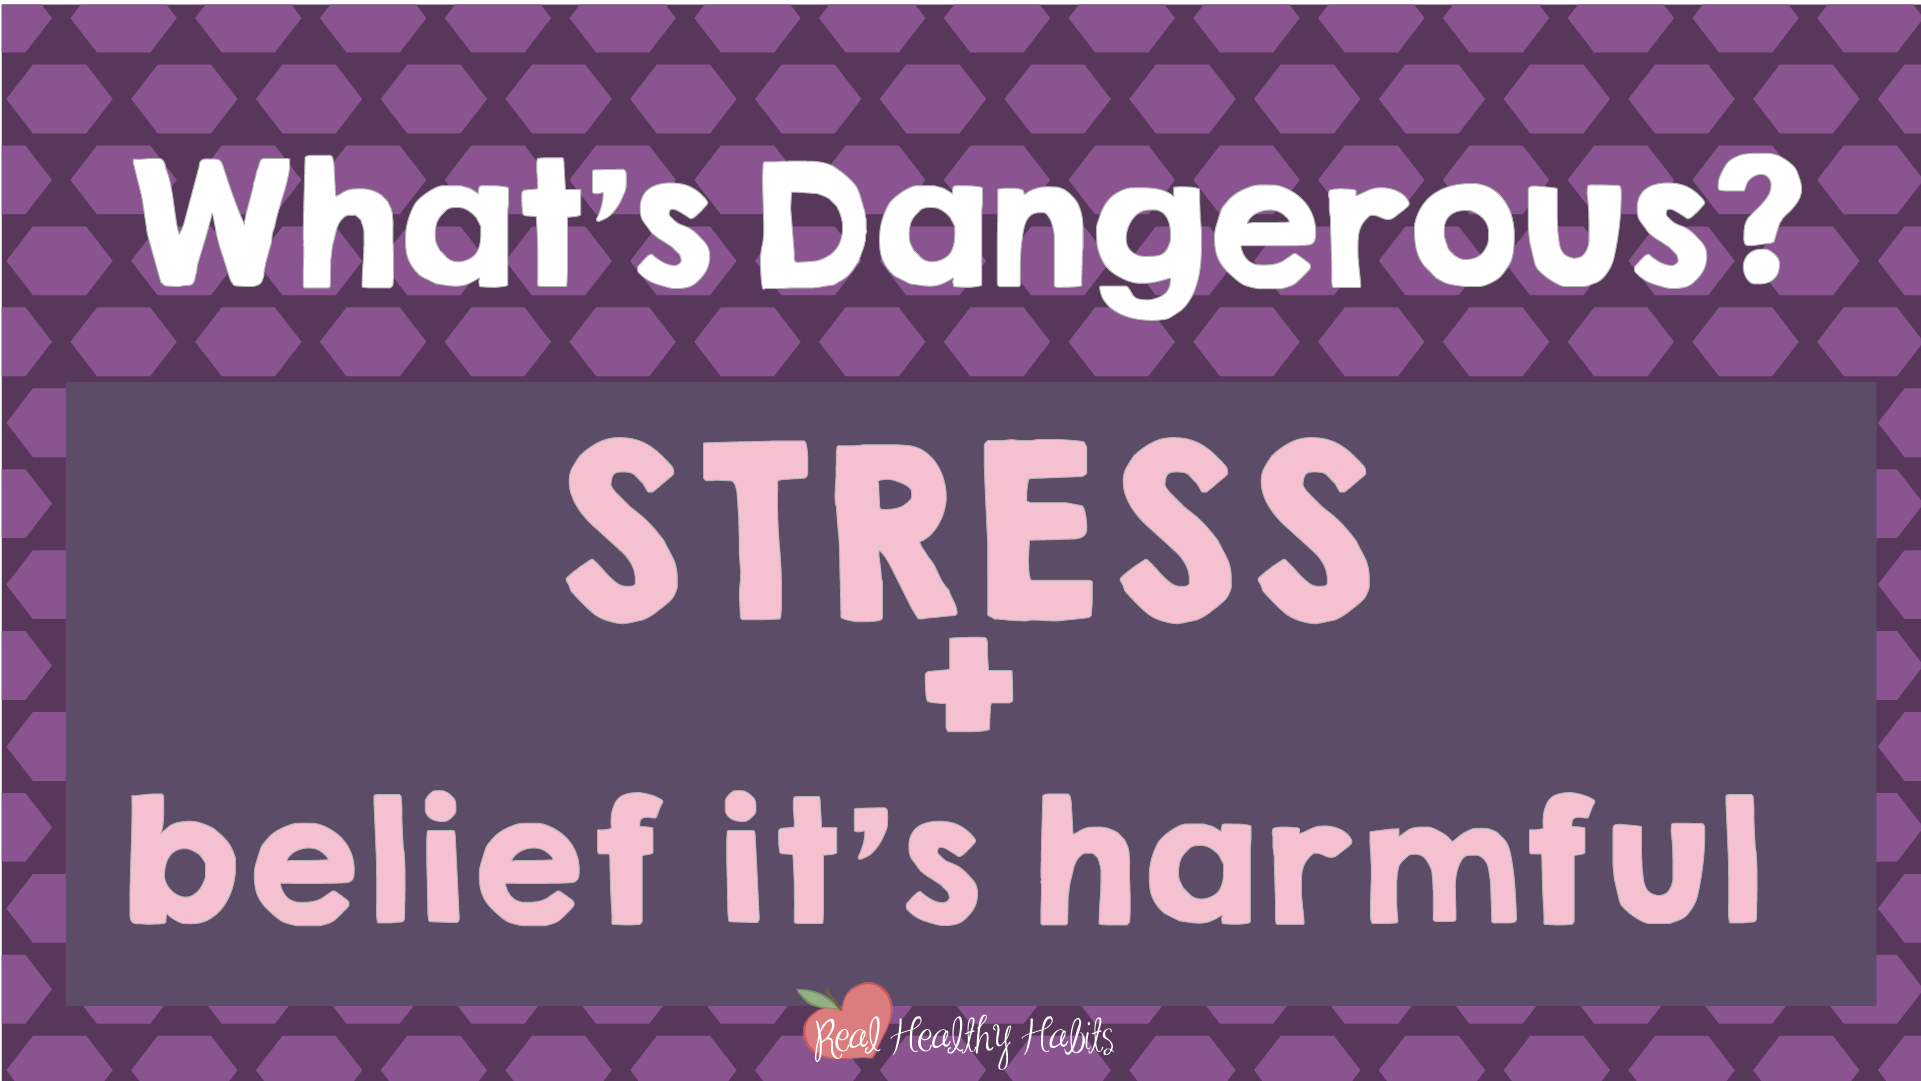 Stress can be helpful or harmful—you choose which one. What's dangerous is stress plus the belief that it's harmful. | How to Make Stress Your Superpower: Stress Paradox #2 | www.realhealthyhabits.com